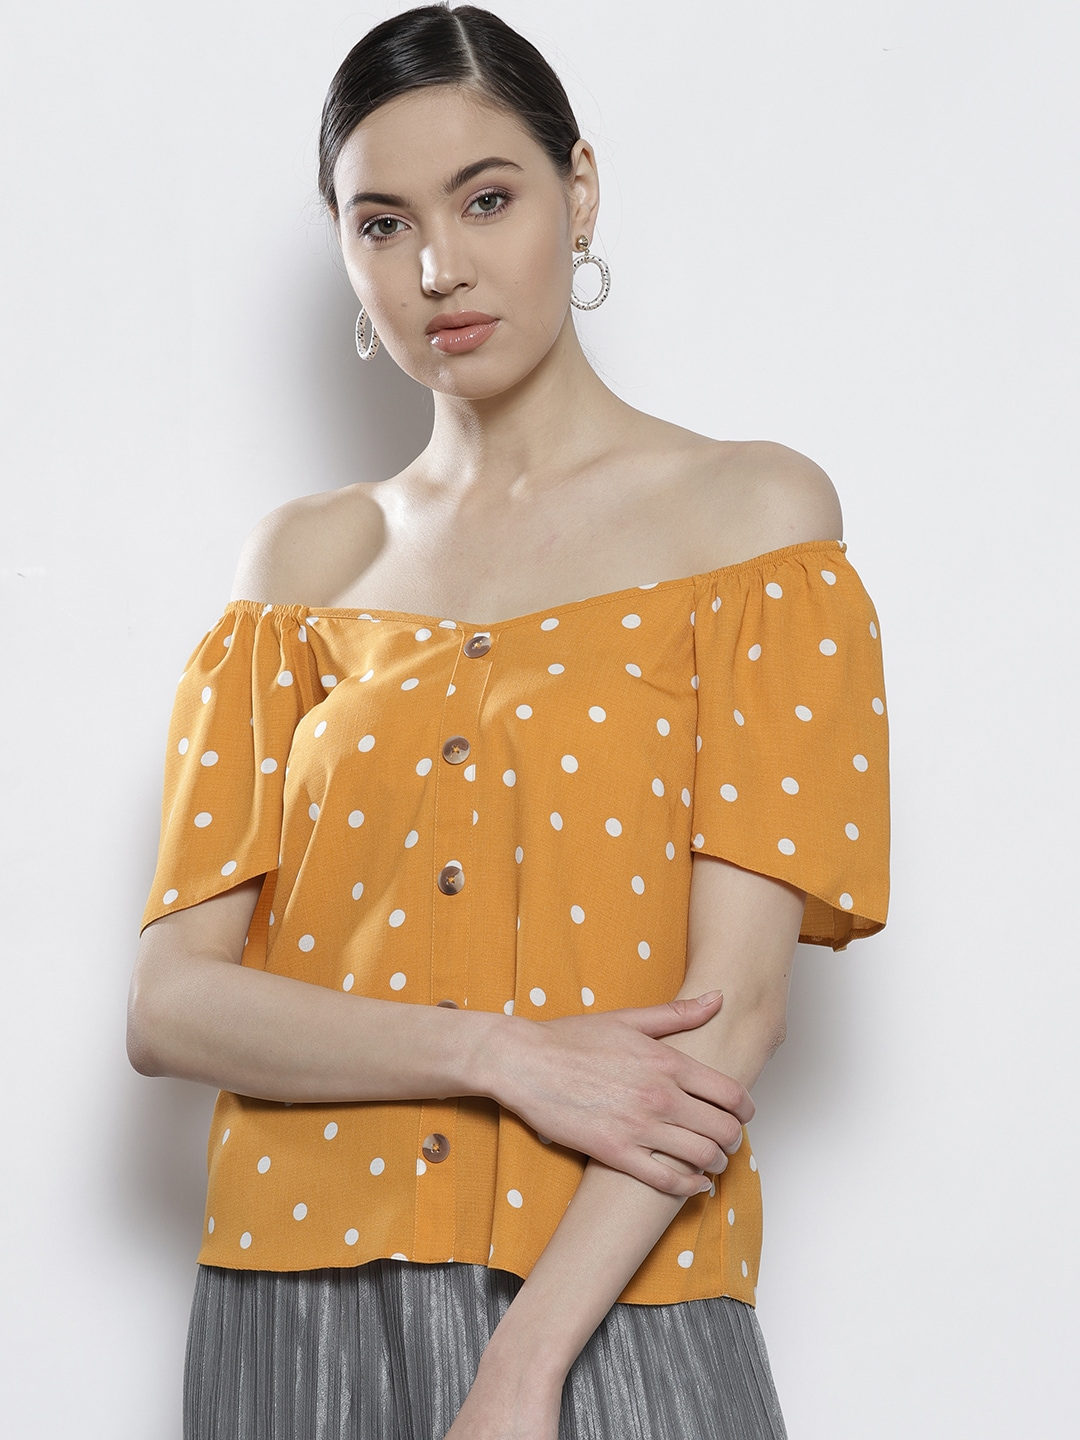 be4b7e2c36ffe5 Flared Tops - Buy Flared Tops online in India